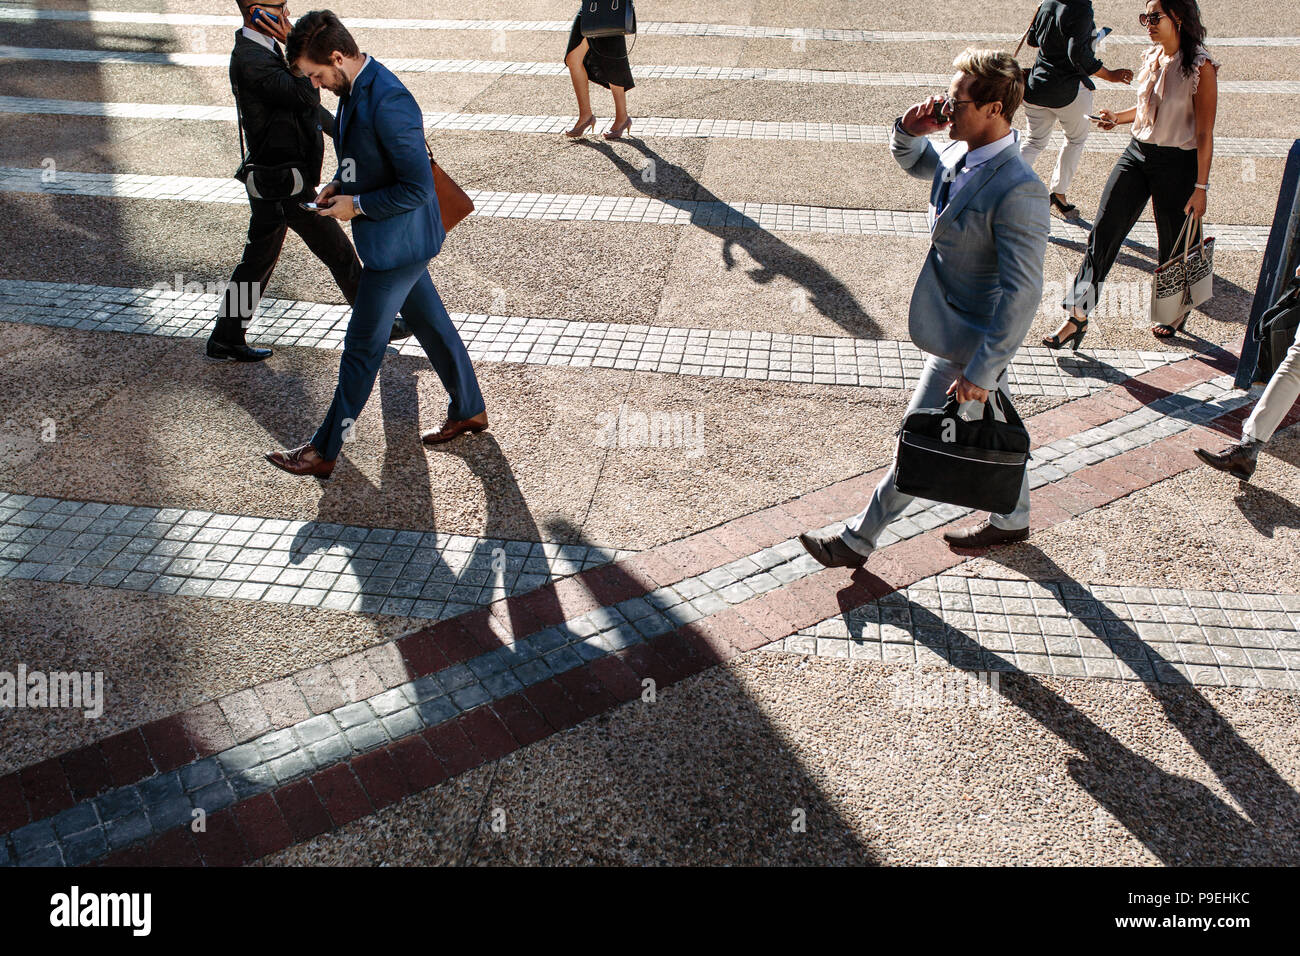 Business people commuting to office in the morning carrying office bags and using mobile phones. Businessmen and businesswomen in a hurry to reach off - Stock Image